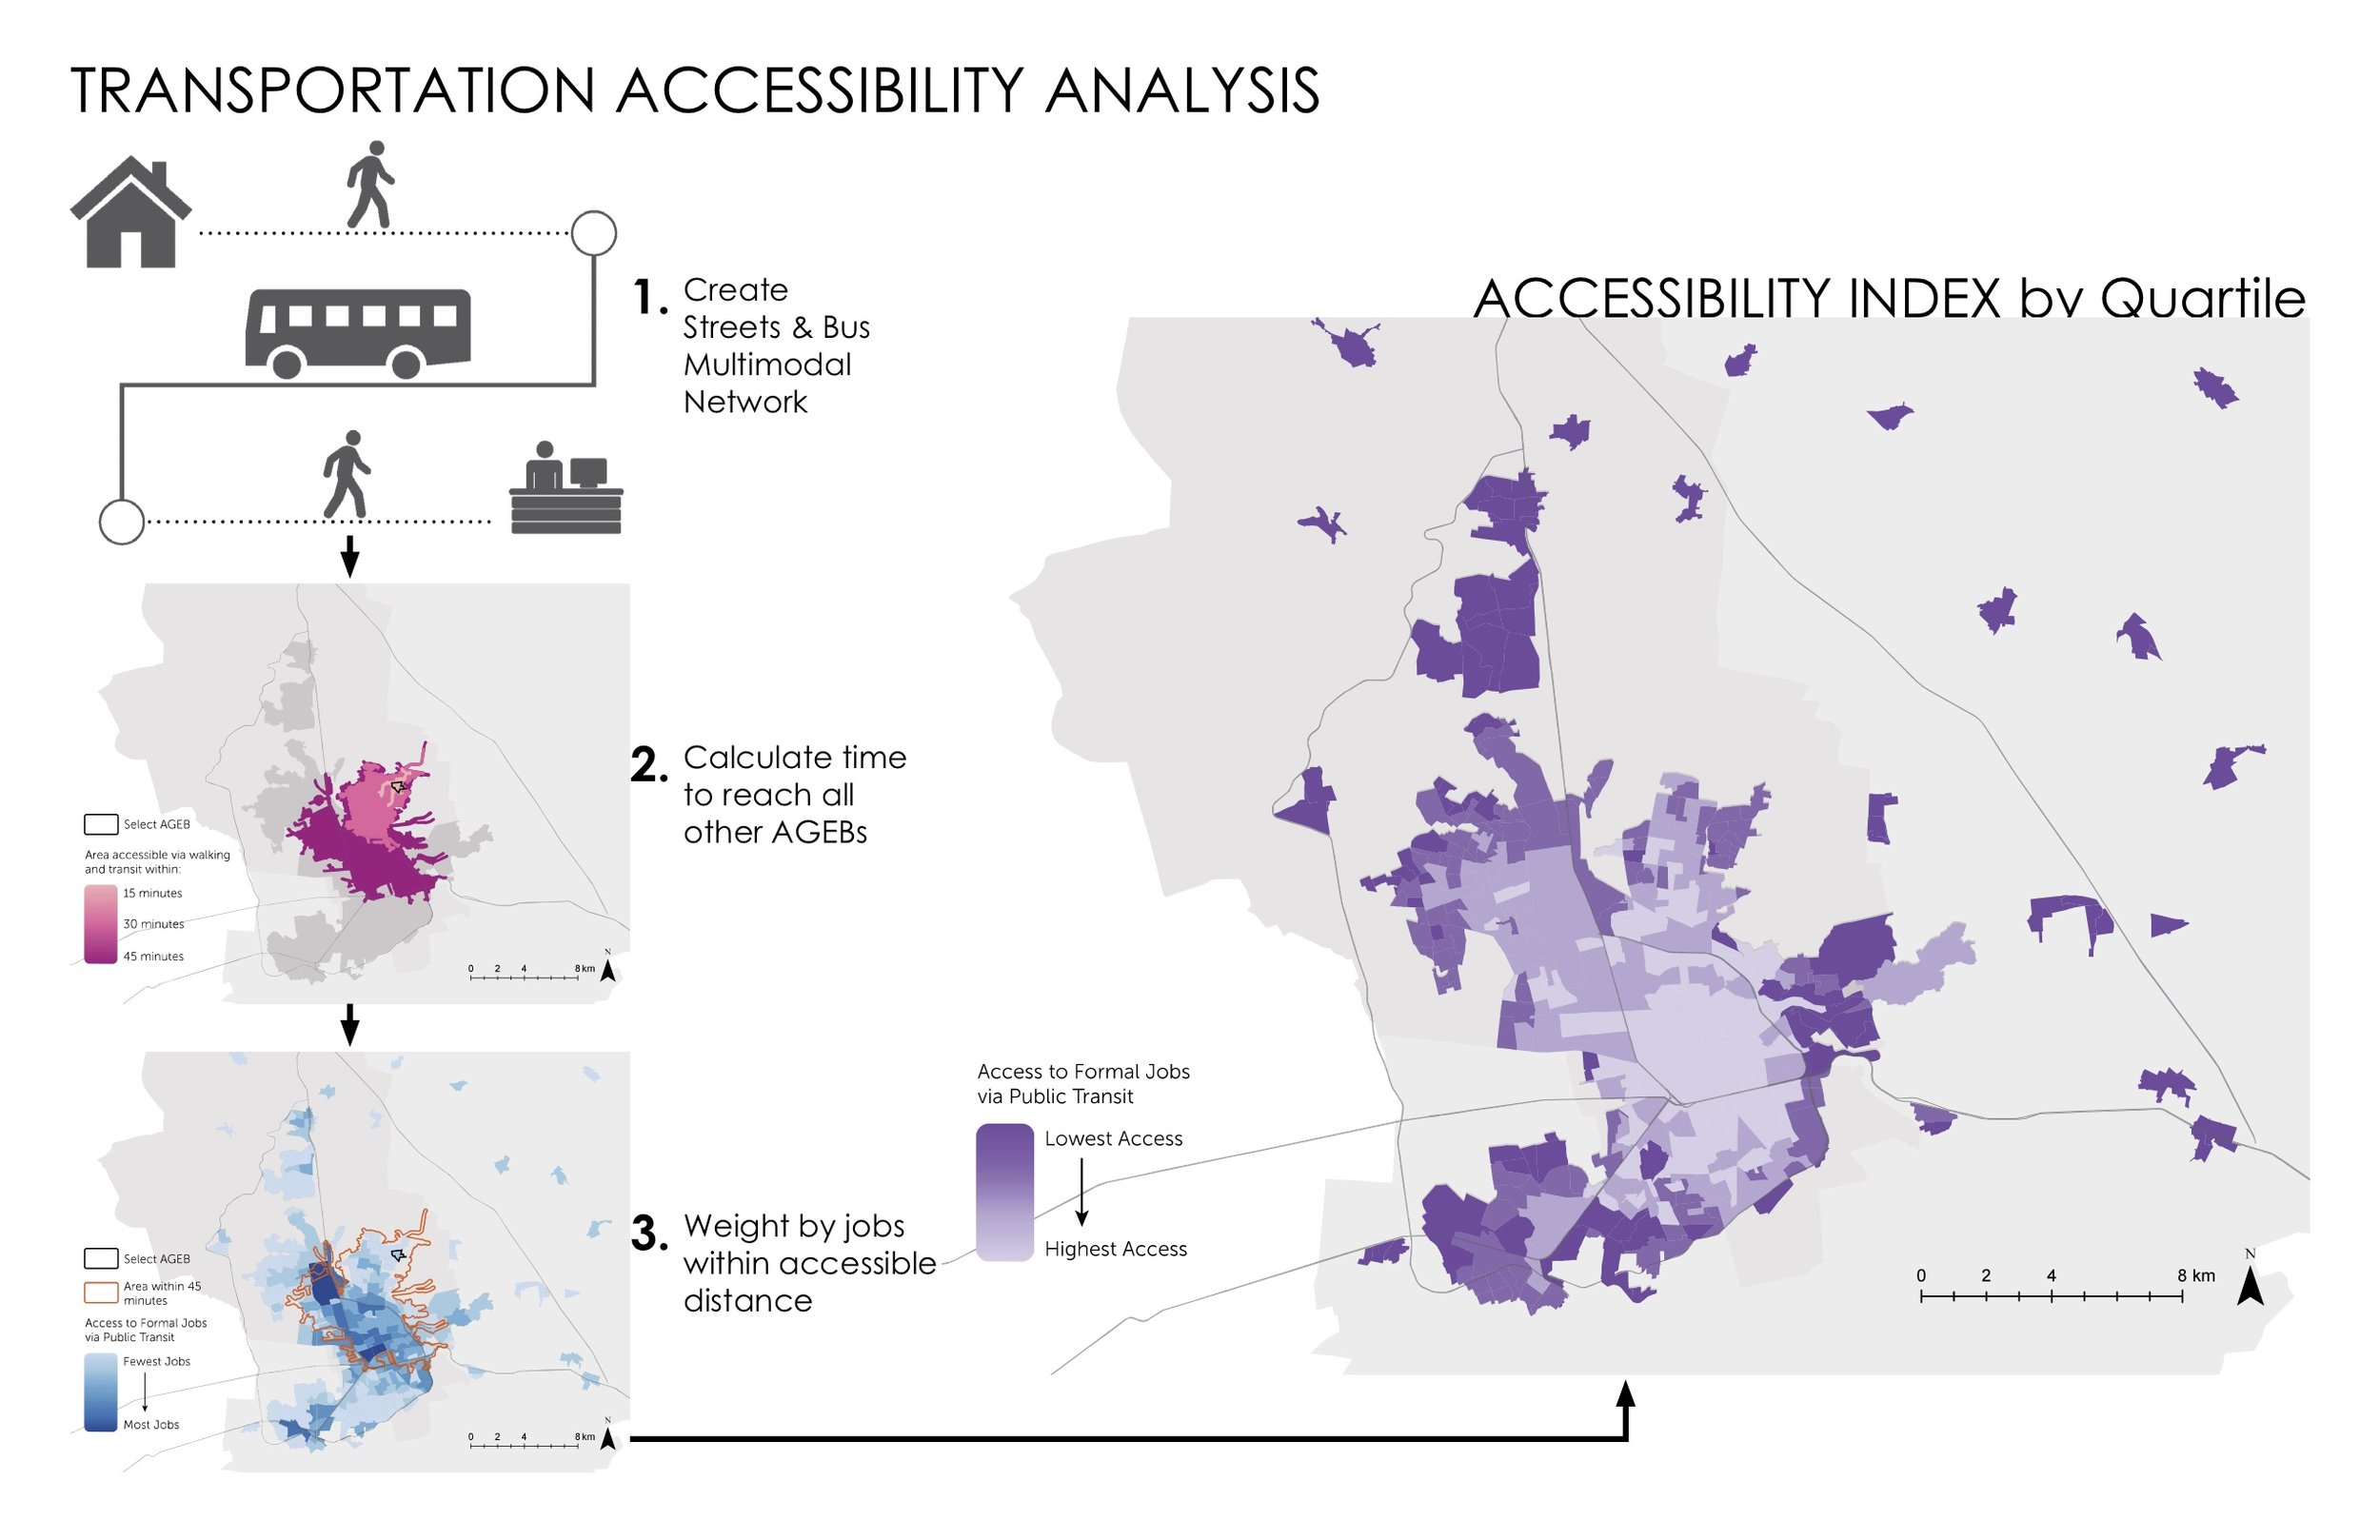 Transportation Accessibility Analysis - Querétaro, Mexico